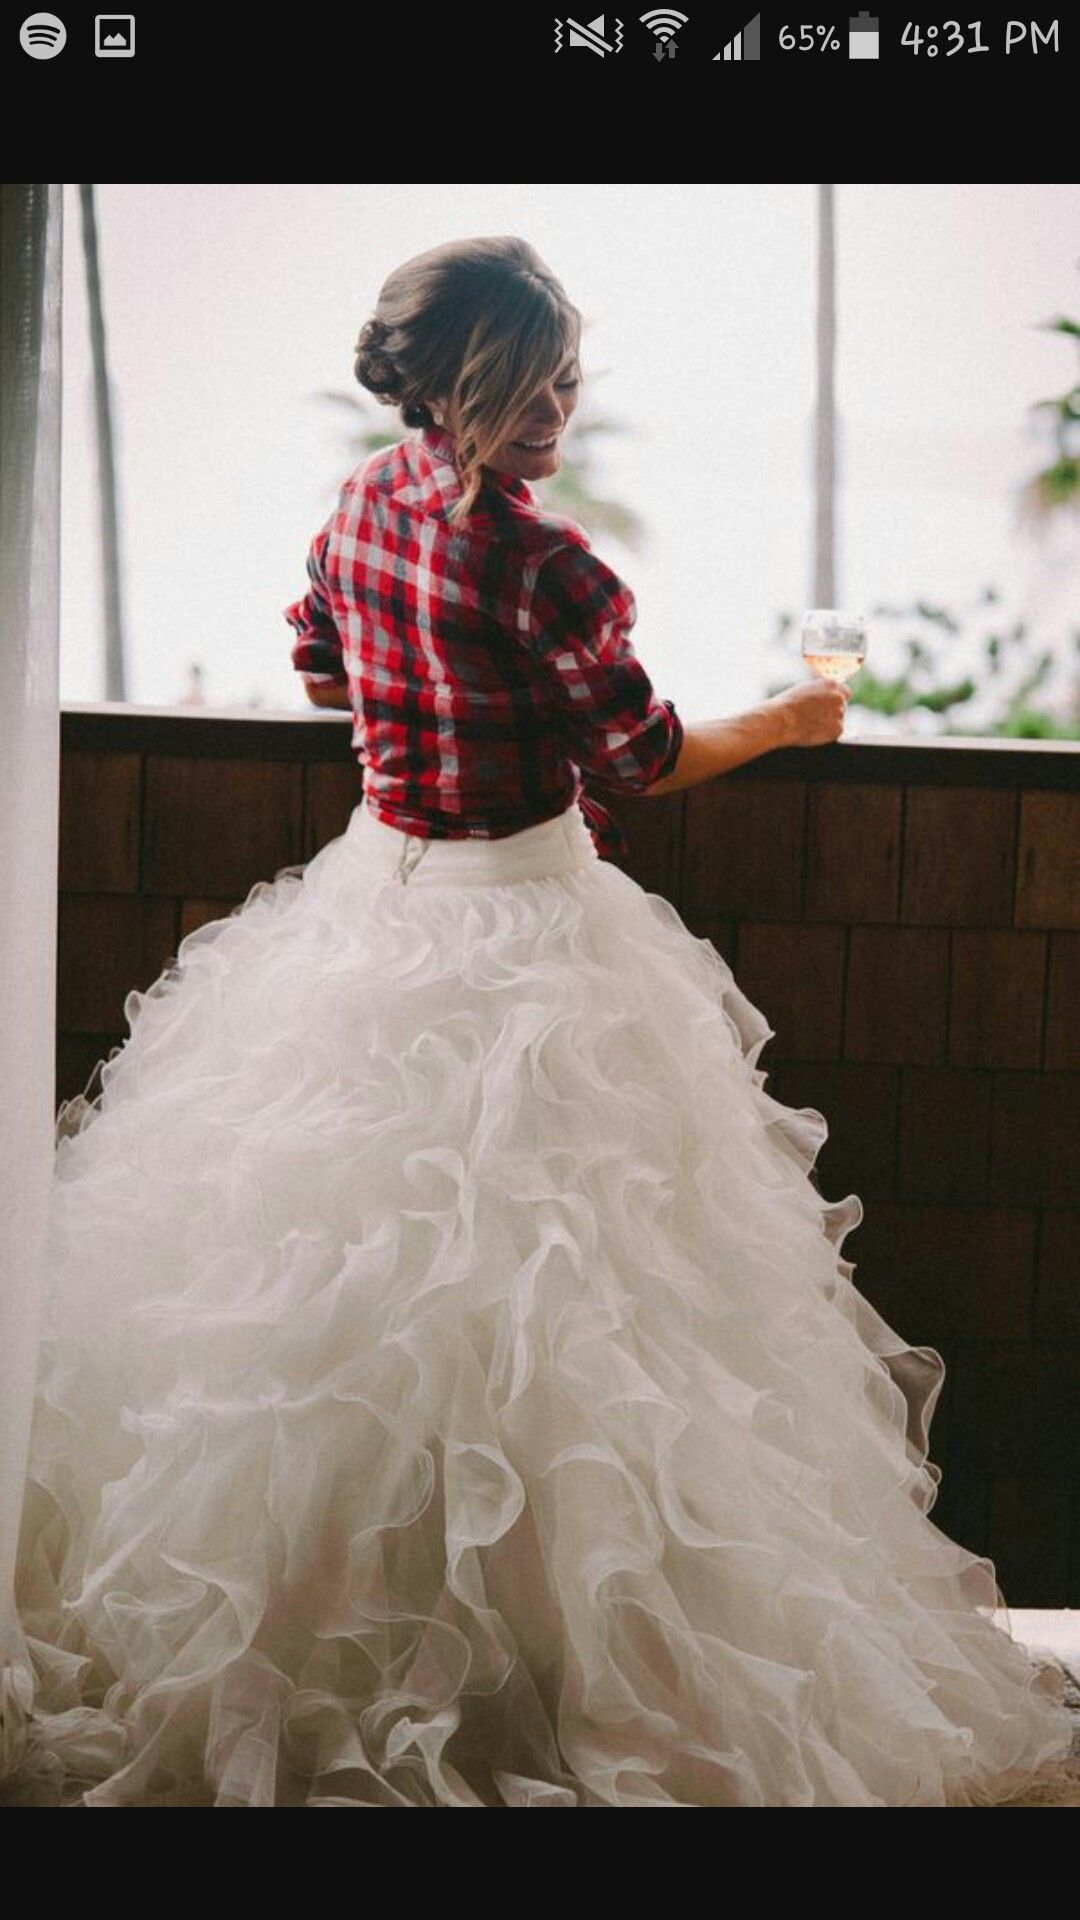 Plaid wedding dress  Pin by Hannah Mills on I Do  Pinterest